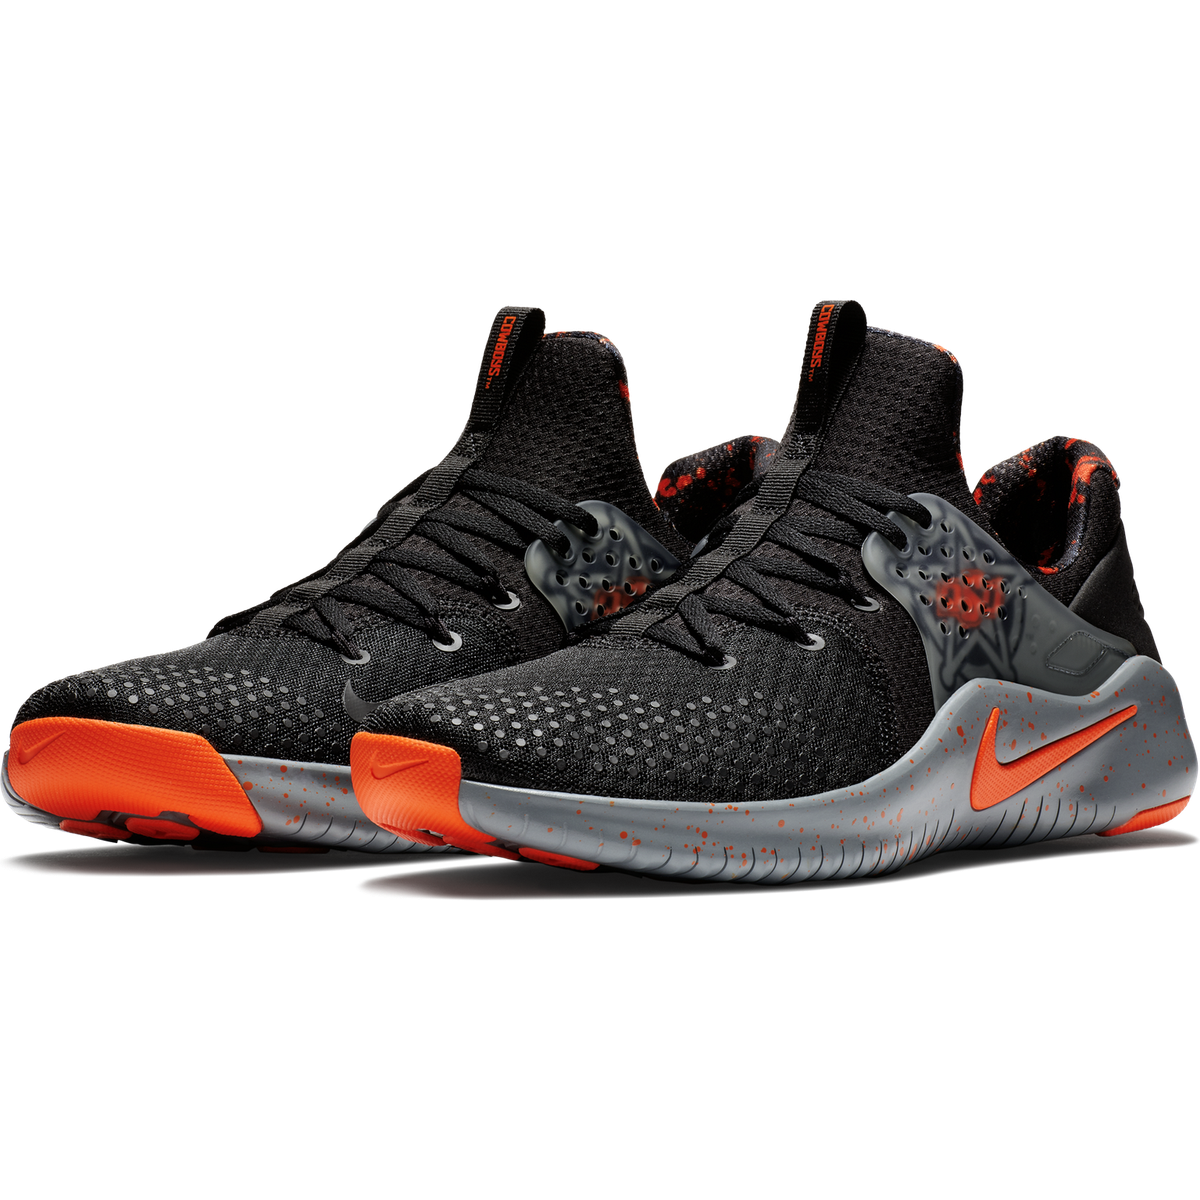 63be44bc11ae8 Oklahoma State Free Trainer V8 Week Zero Men s Shoe for  109.99 Fanatics